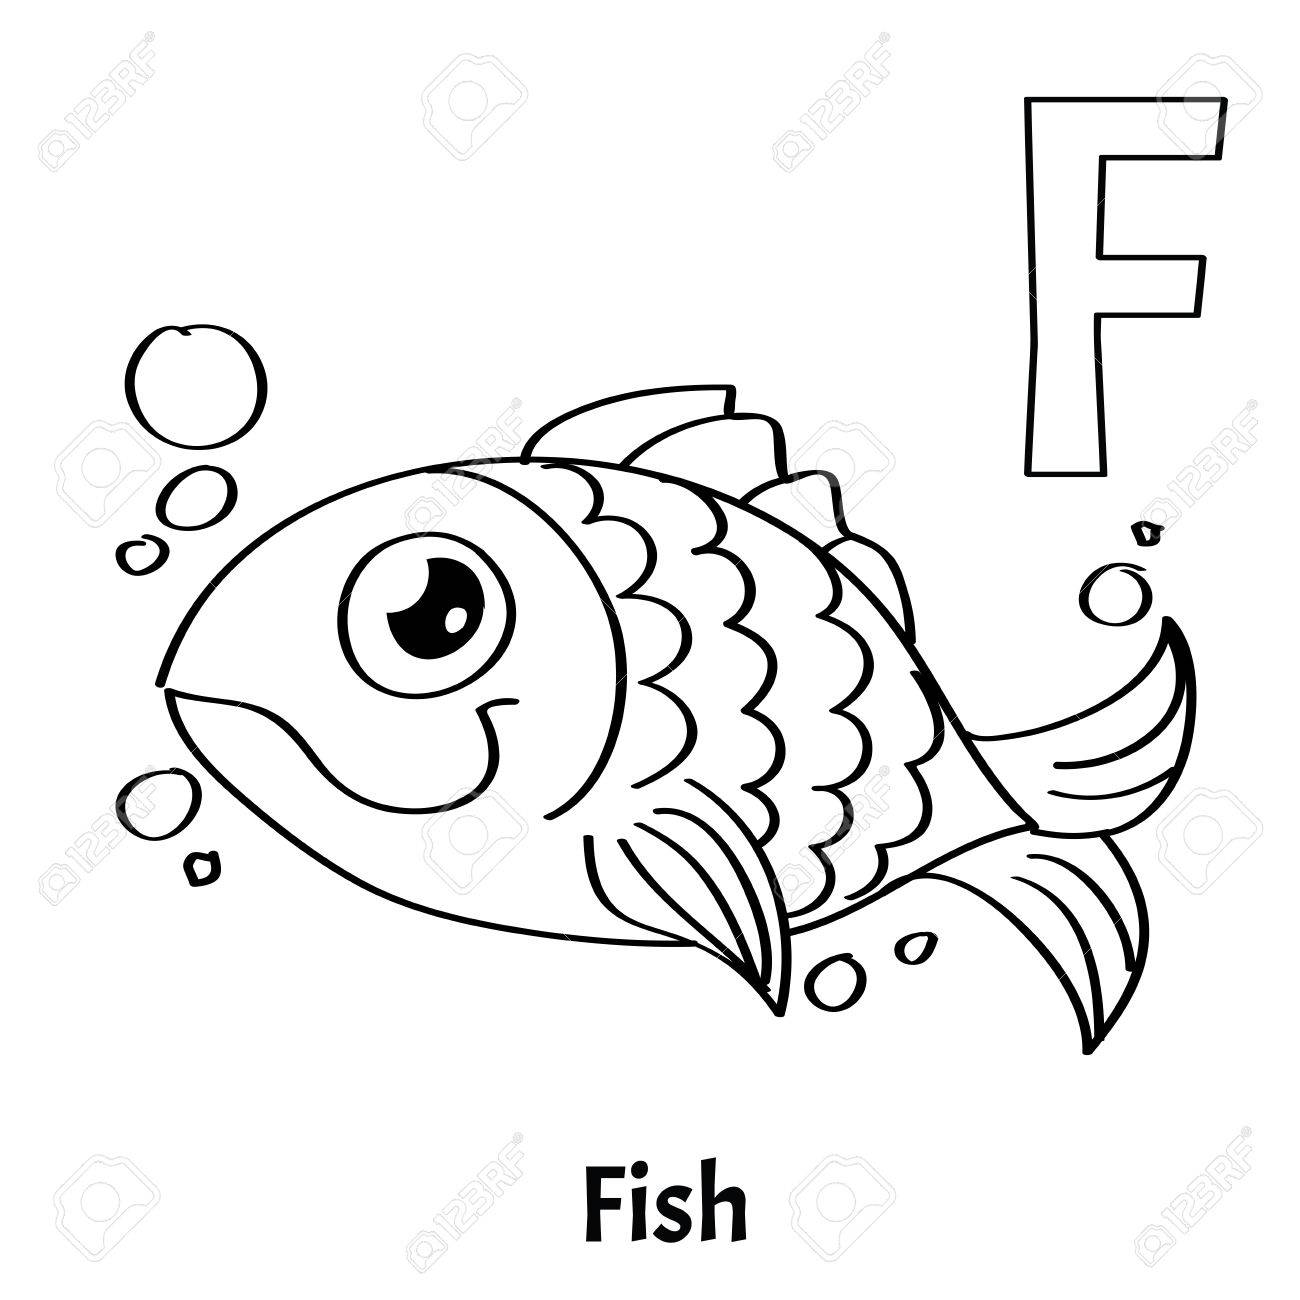 vector alphabet letter coloring fish royalty free vectors and stock illustration image coloring pages Letter F Coloring Page